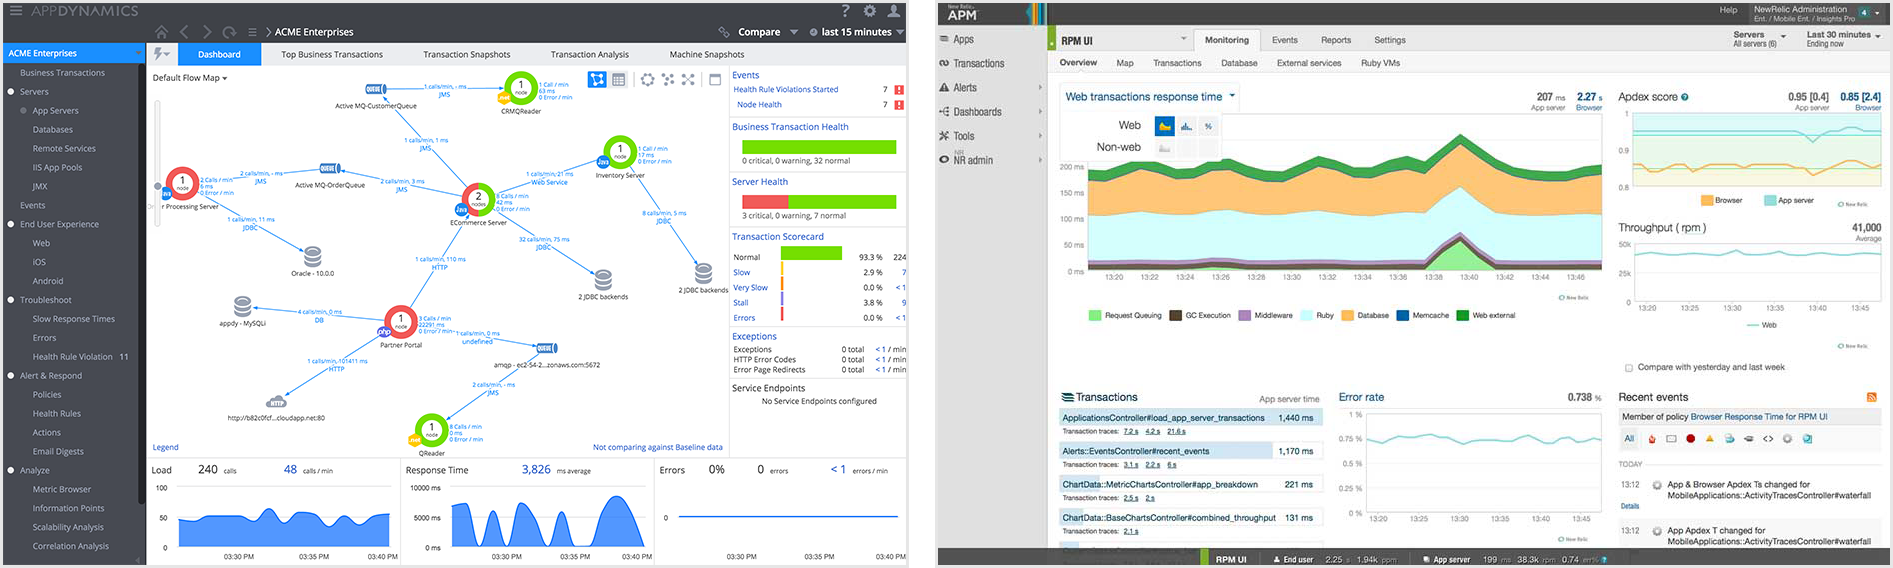 AppDynamics on the left, New Relic on the right – Main dashboard screen